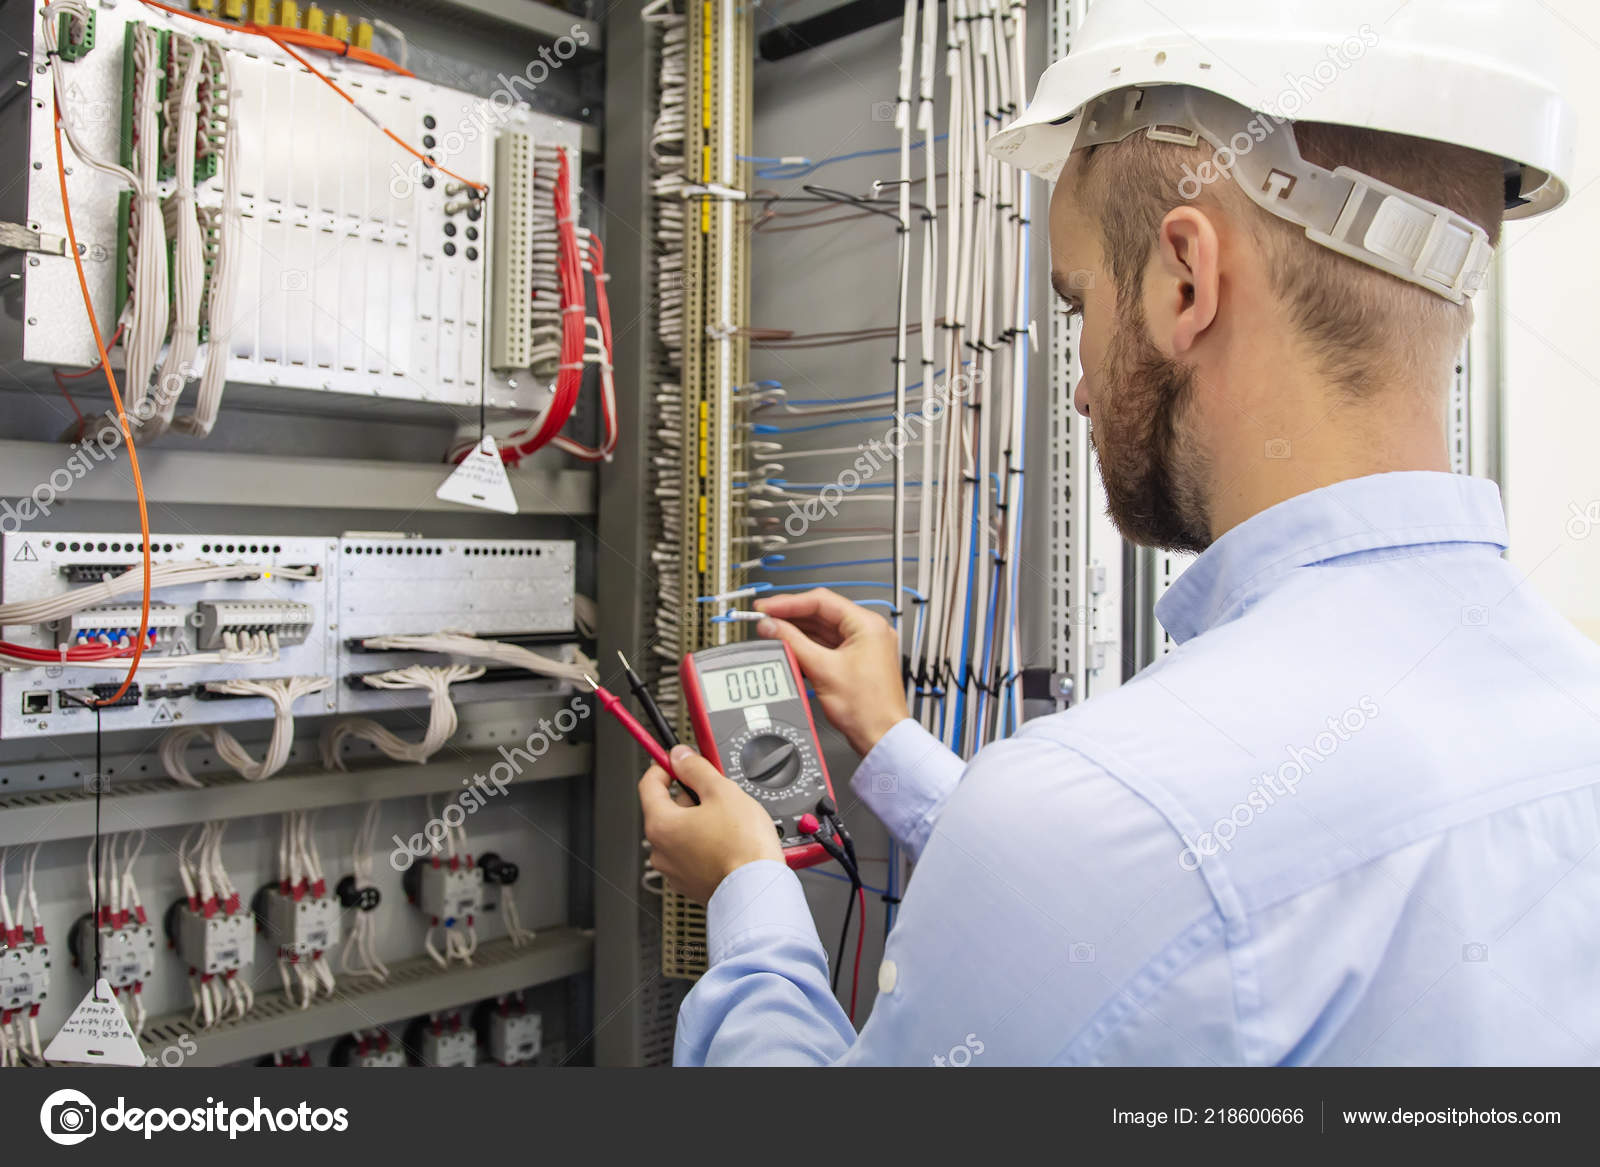 hight resolution of electrician technician in fuse box maintenance engineer in control panel worker is testing automation equipment engineering in electrical station